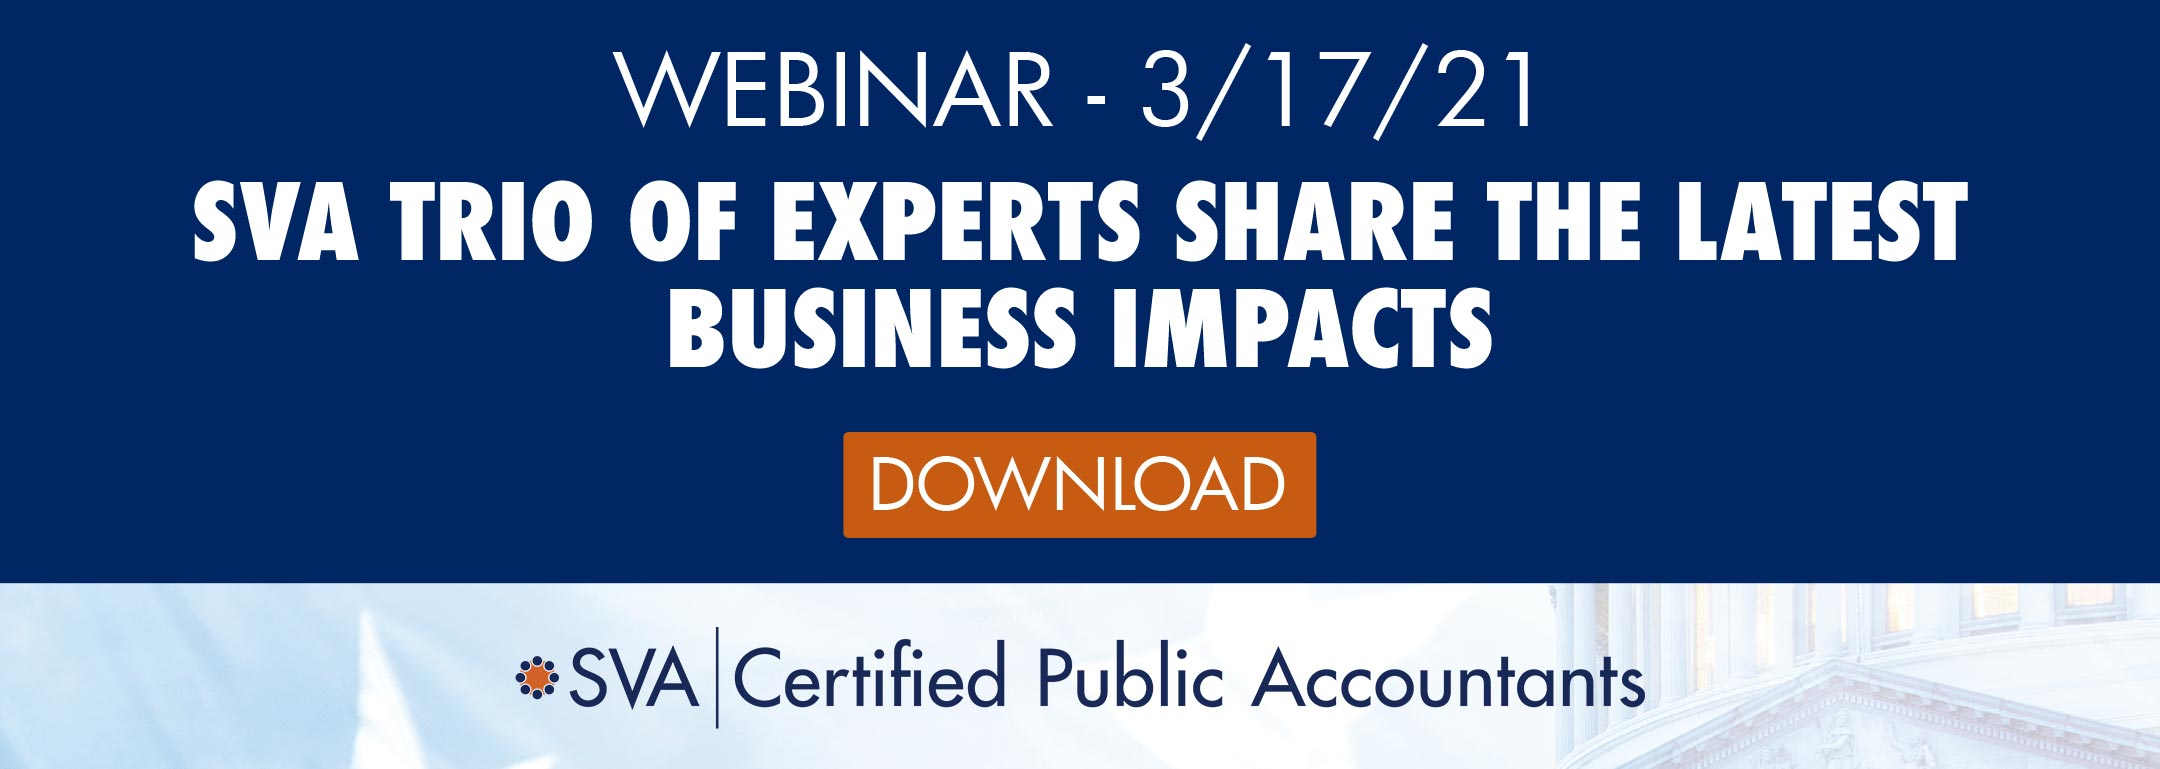 Virtual Business Discussion: SVA Trio of Experts Share the Latest Business Impacts